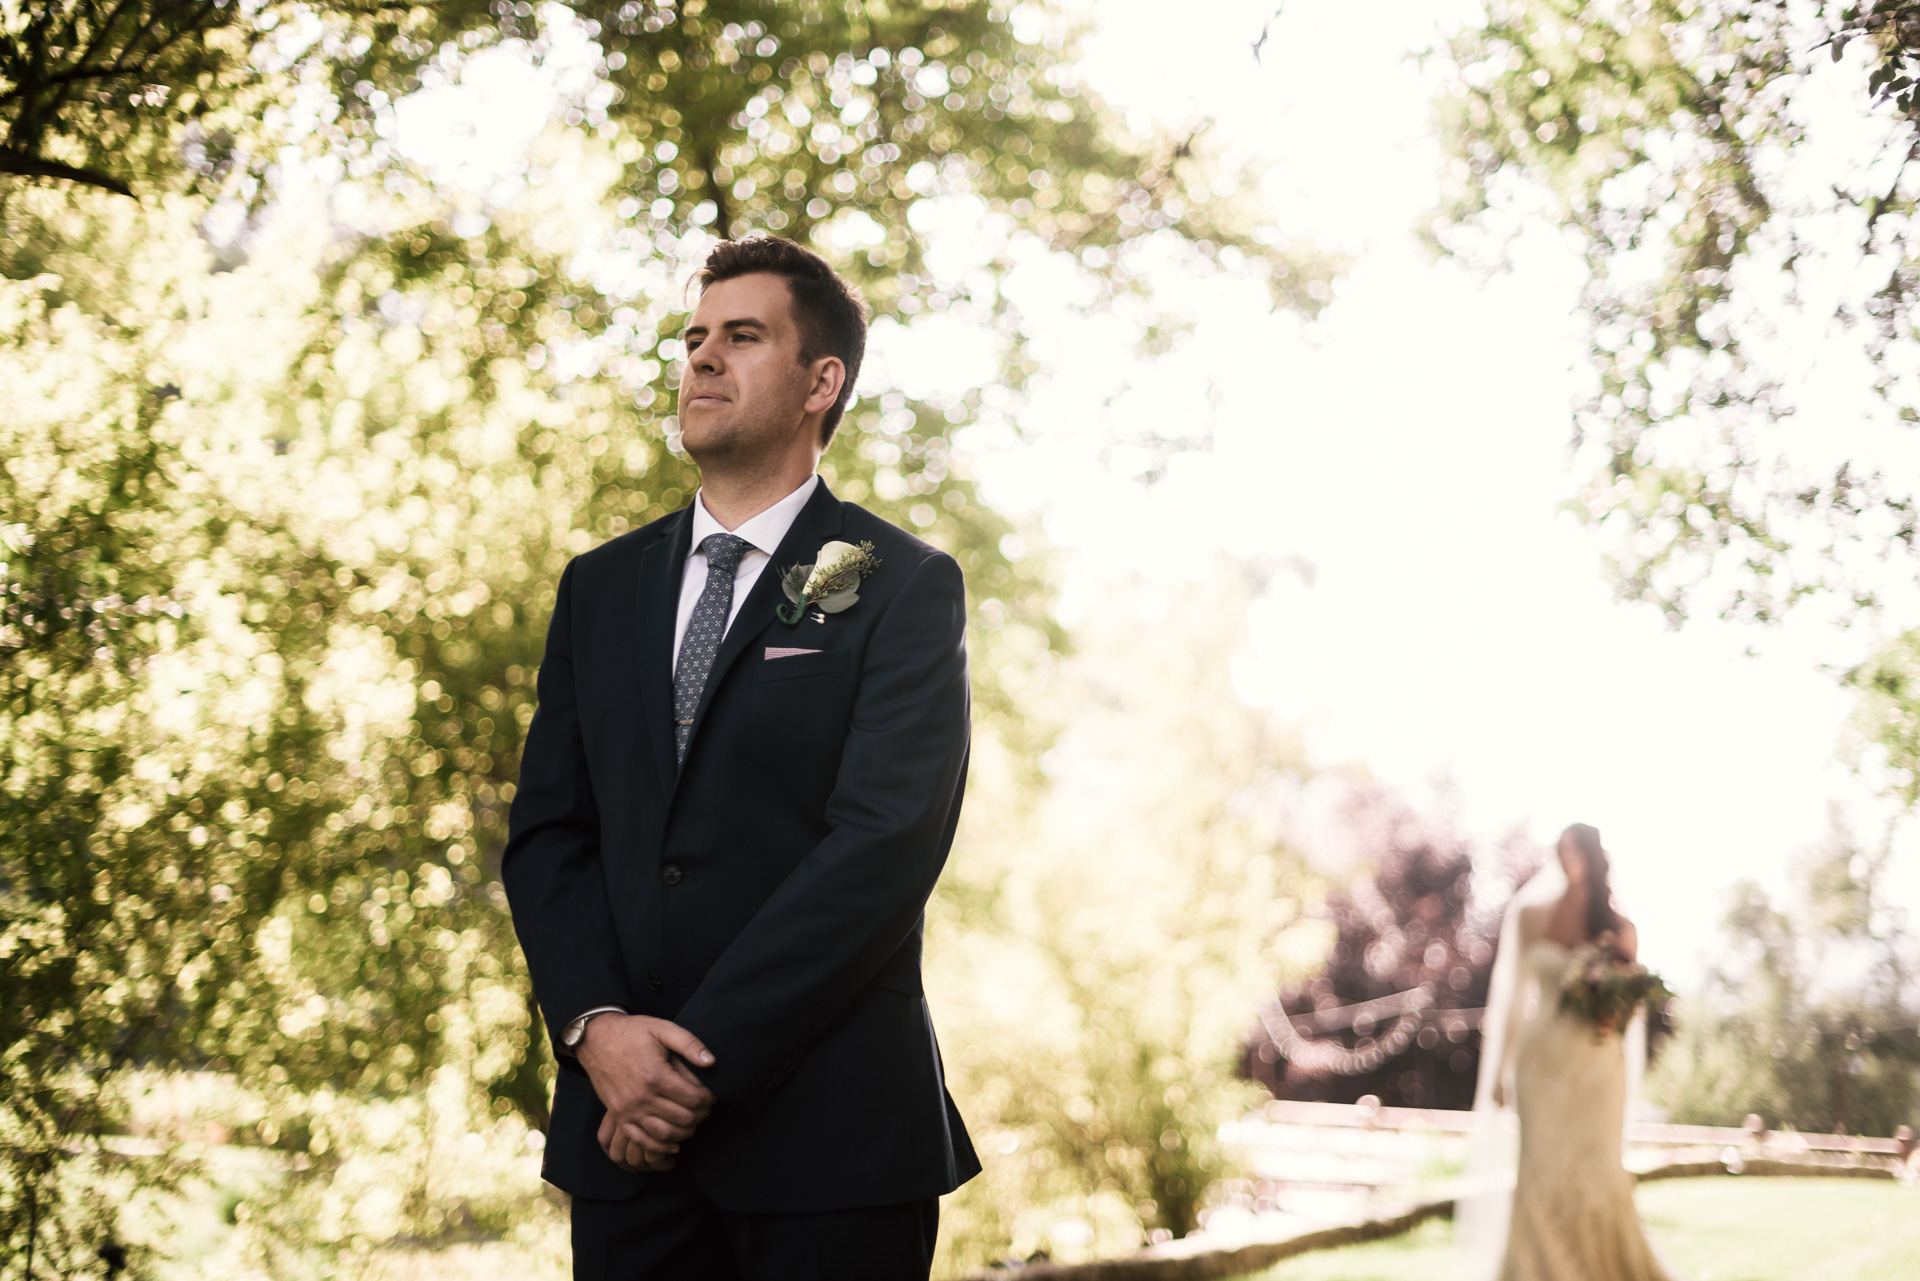 groom waits with anticipation as bride approaches for their first look at the secret garden located at the Historic Parish ranch in Oak Glen California